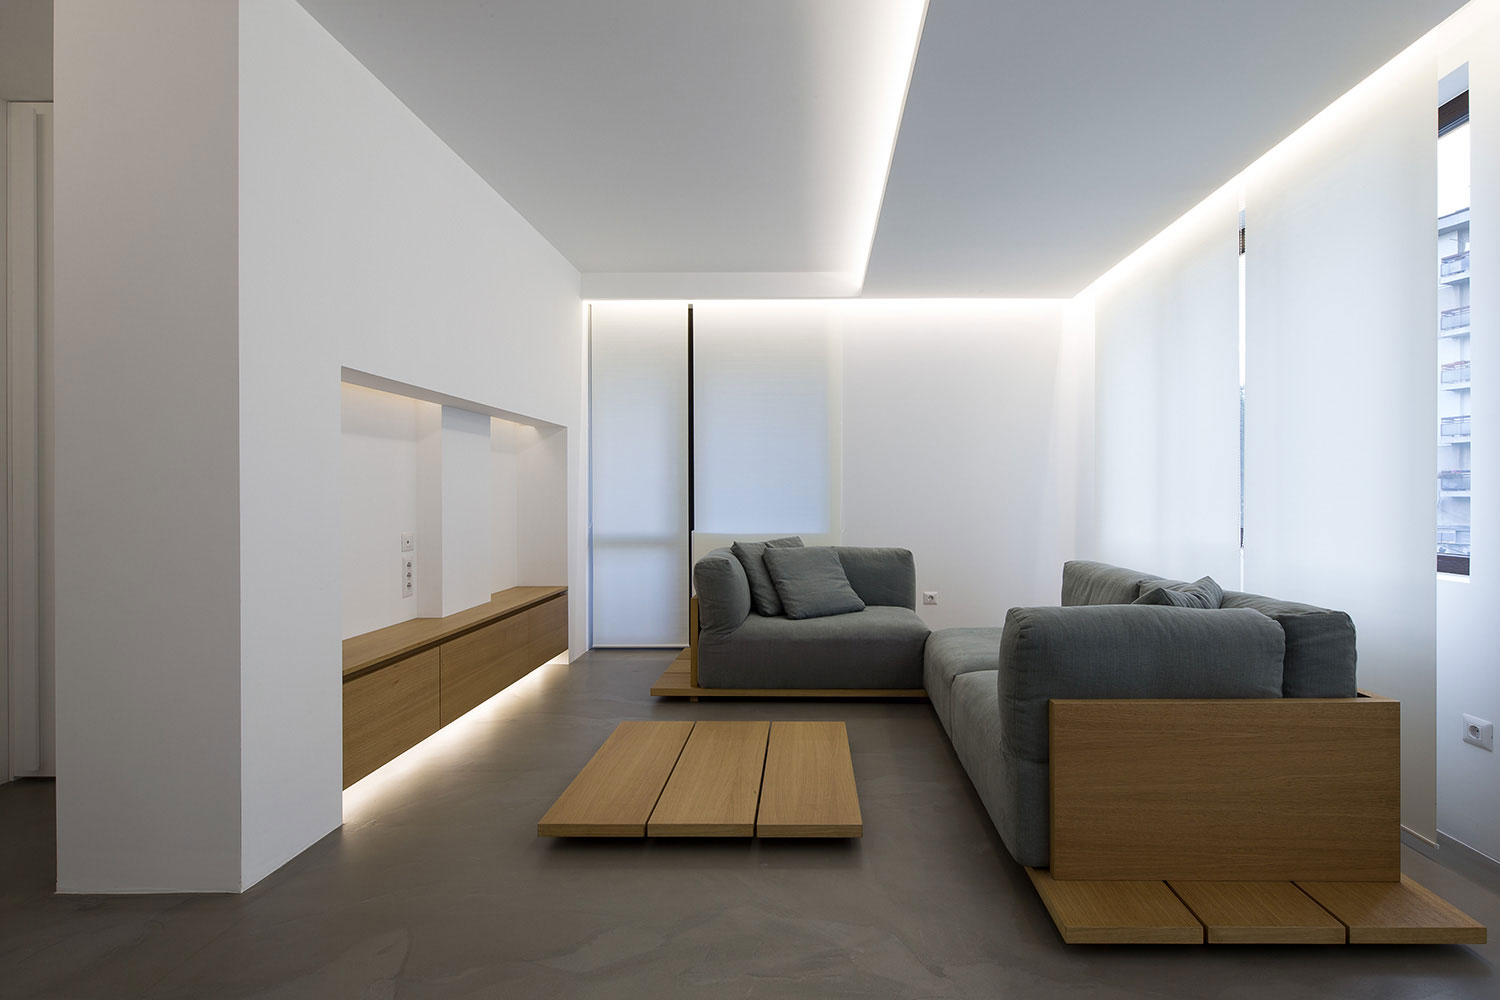 Elia nedkov designs a minimalist interior in sofia bulgaria for Minimalist apartment decor